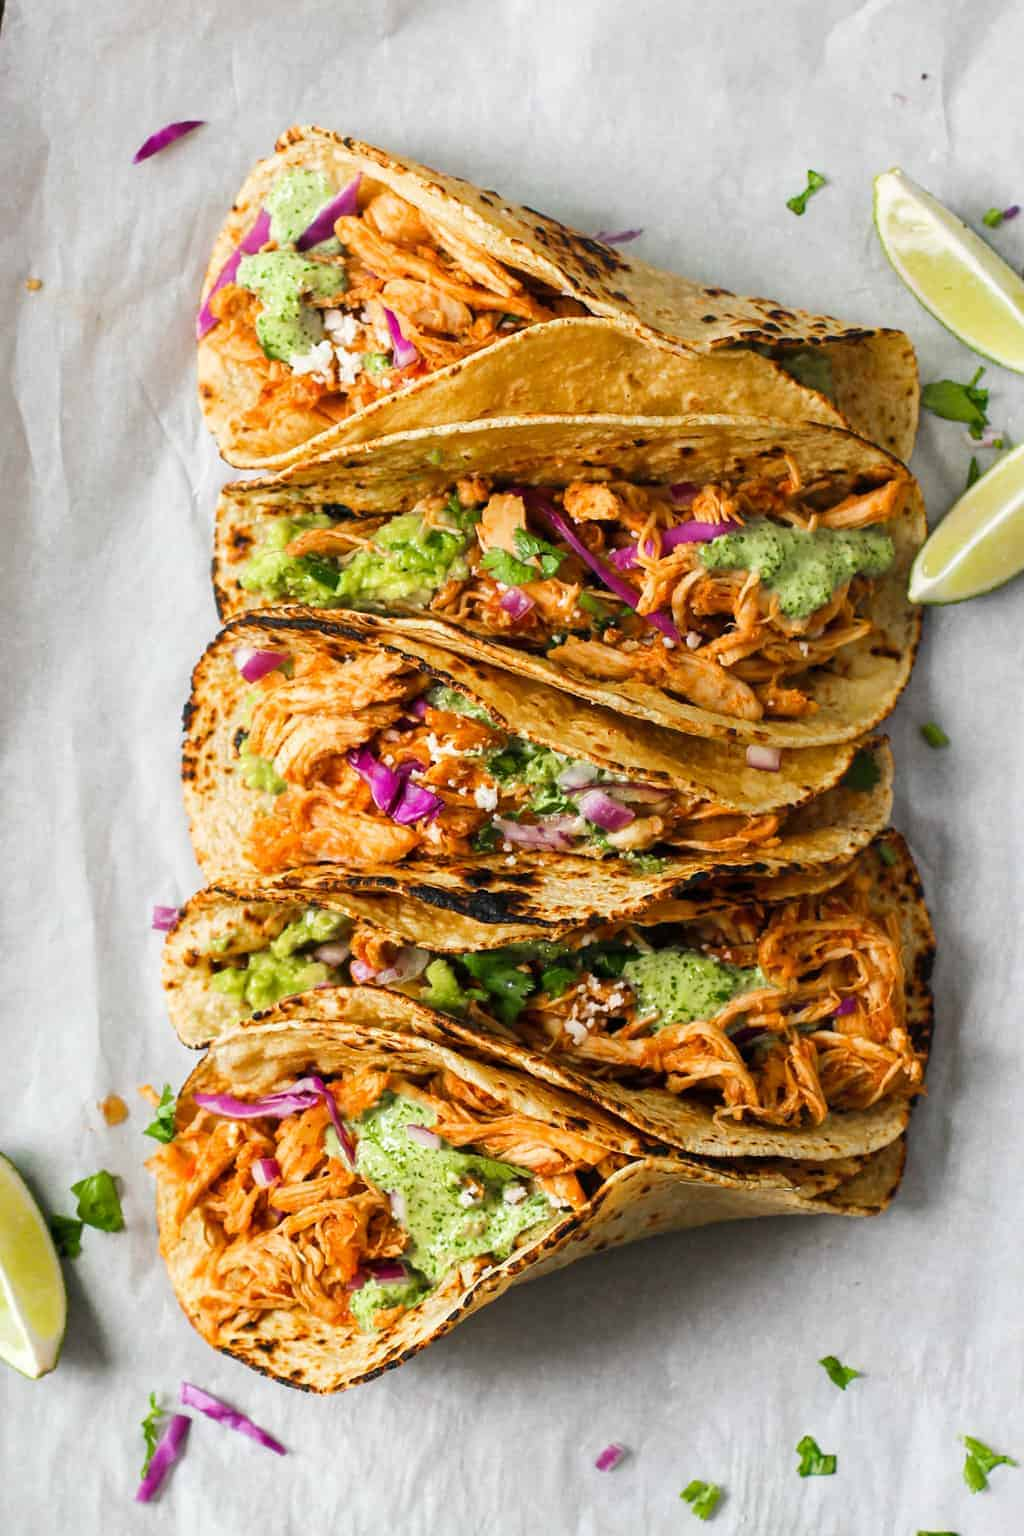 Chicken Tinga Tacos with lemaon wedges on the side